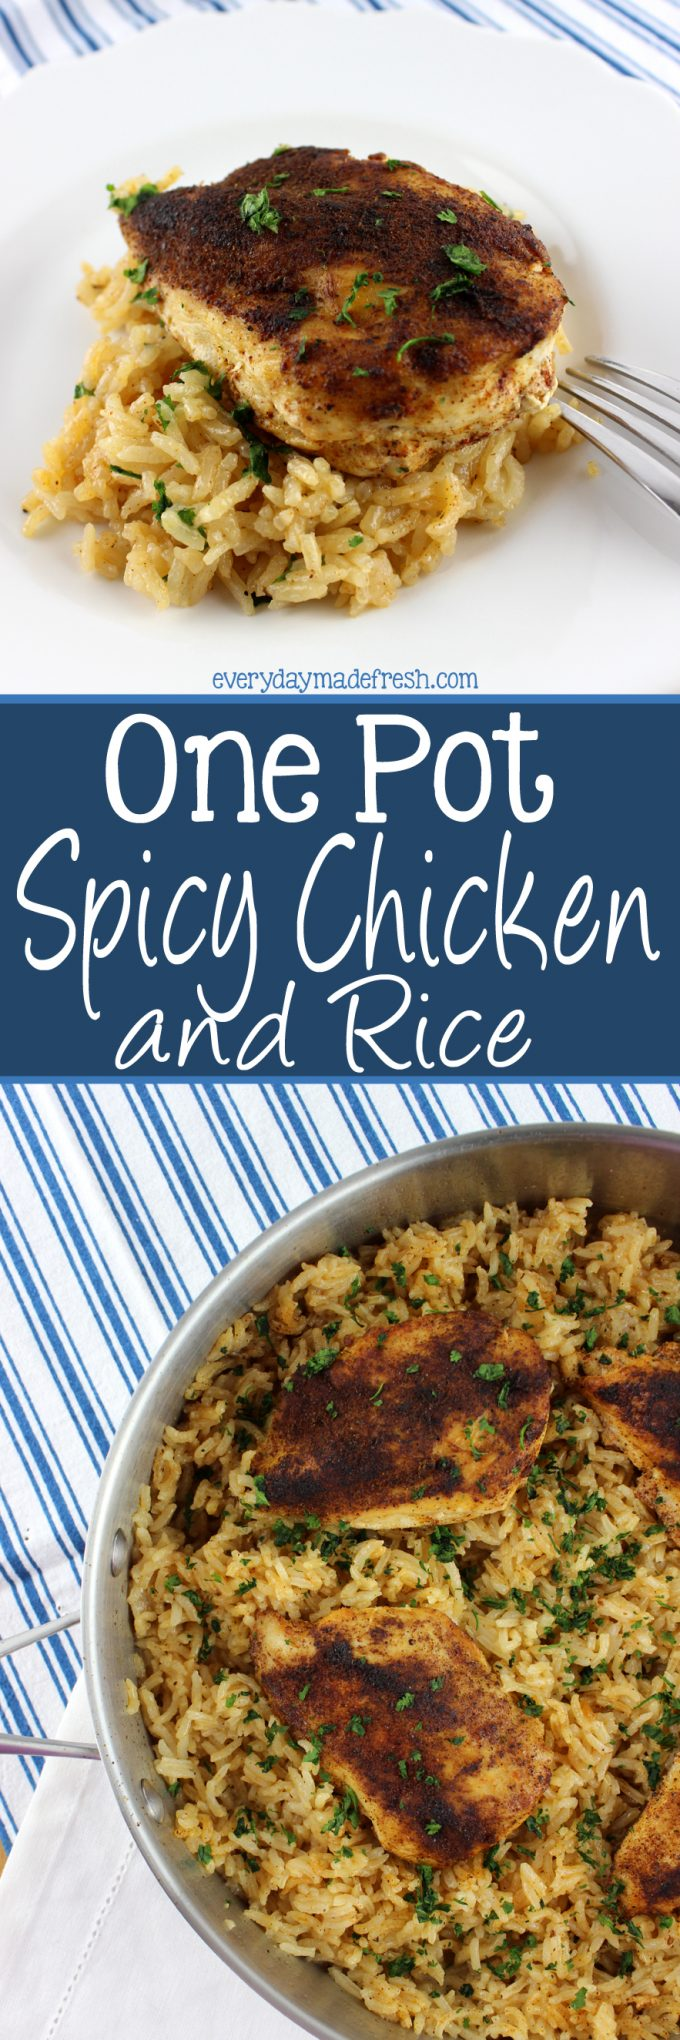 This One Pot Spicy Chicken and Rice is bursting with flavor! Ready in 30 minutes and using only one pot, you'll have dinner on the table in no time. | EverydayMadeFresh.com